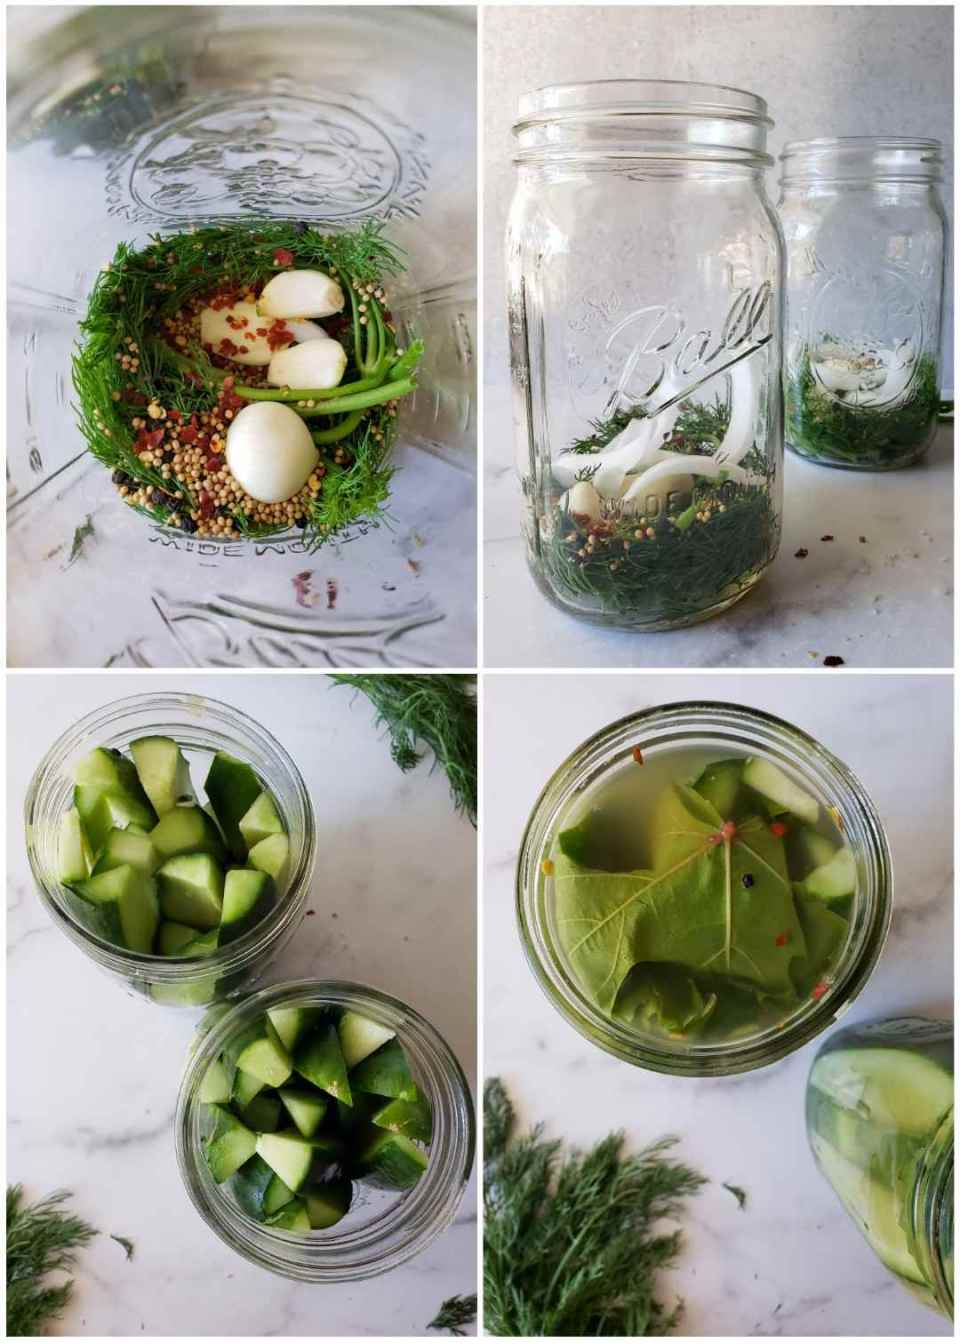 A four way image collage, the first image shows the inside of a quart jar with fresh dill, garlic cloves, mustard seeds, red chili flakes, and peppercorns nestled into the bottom. The second image shows the side of the jars after onion slices are added to the top of the previous ingredients listed. The third image shows a birds eye view of the jars after they have been packed with cucumber spears lengthwise into the jar. The tops of the cucumber spears are visible from above. The fourth image shows a birds eye view of the top of the jar after the brine has been added and grape leaves are stuffed into the top as a cap due to the tannins the leaves contain which helps produce a crisp refrigerator pickle.